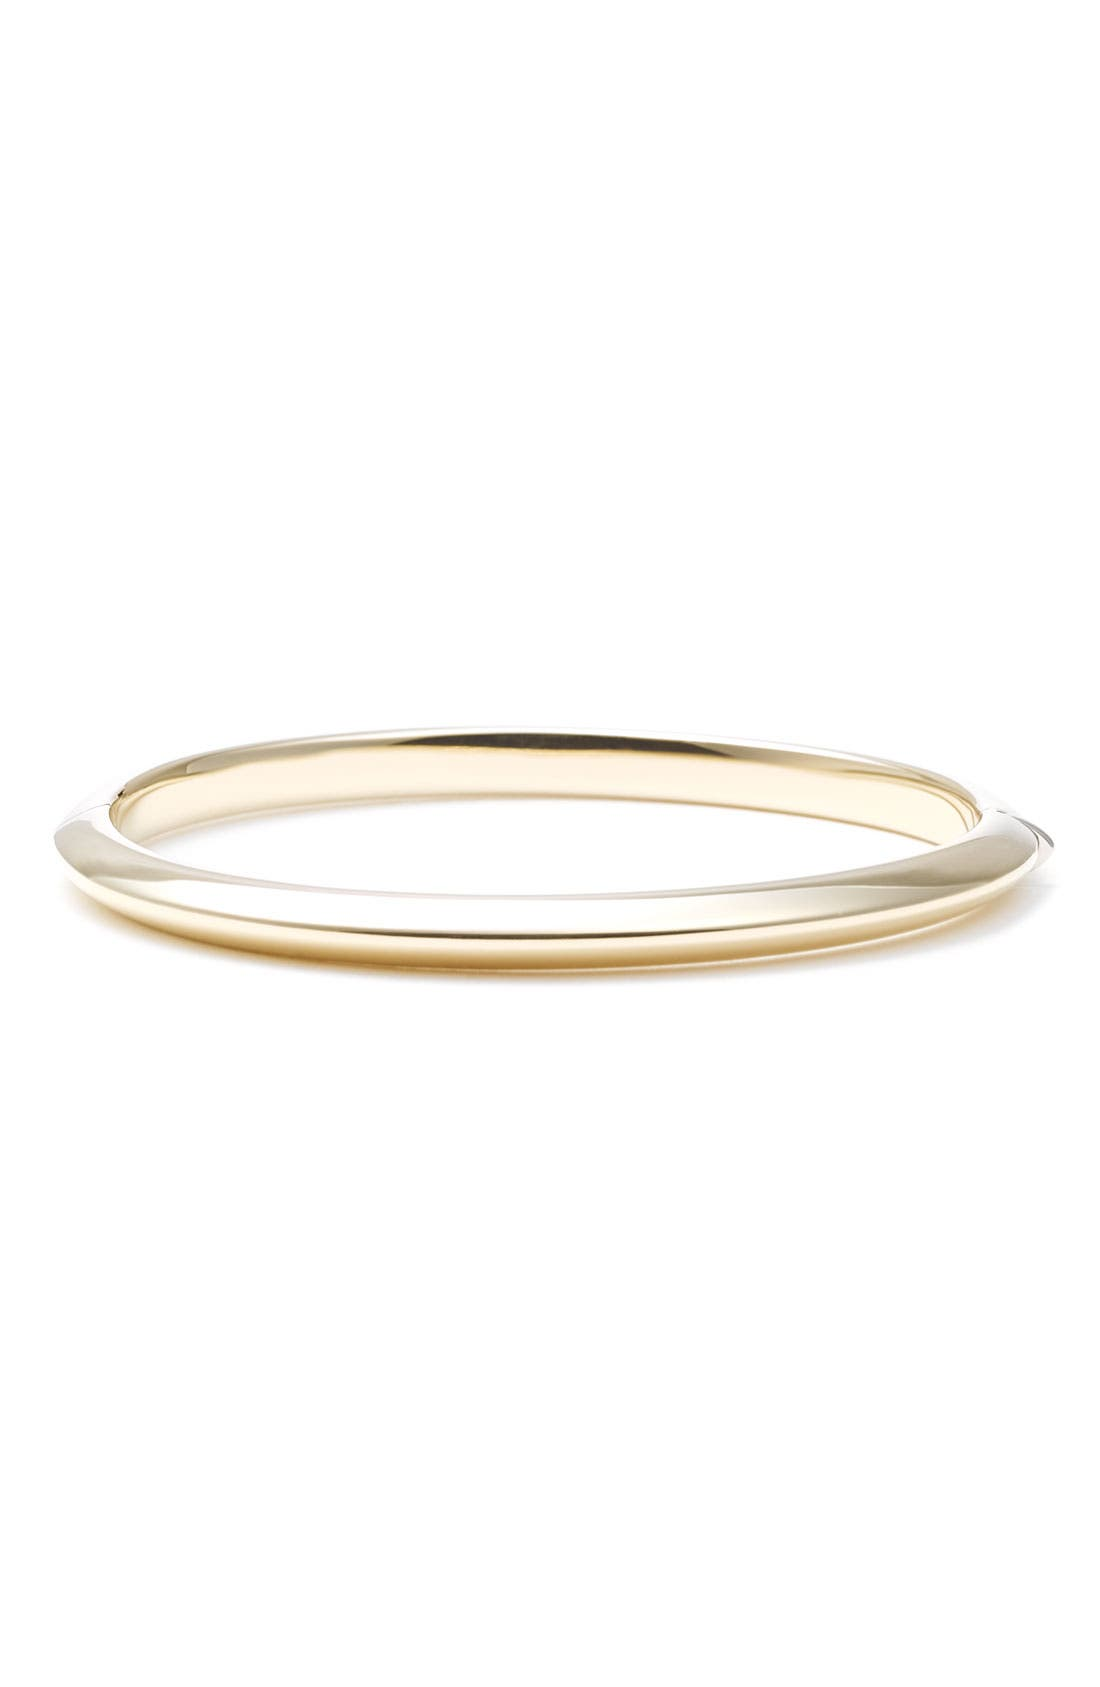 Alternate Image 1 Selected - Roberto Coin 'Knife Edge' Gold Bangle